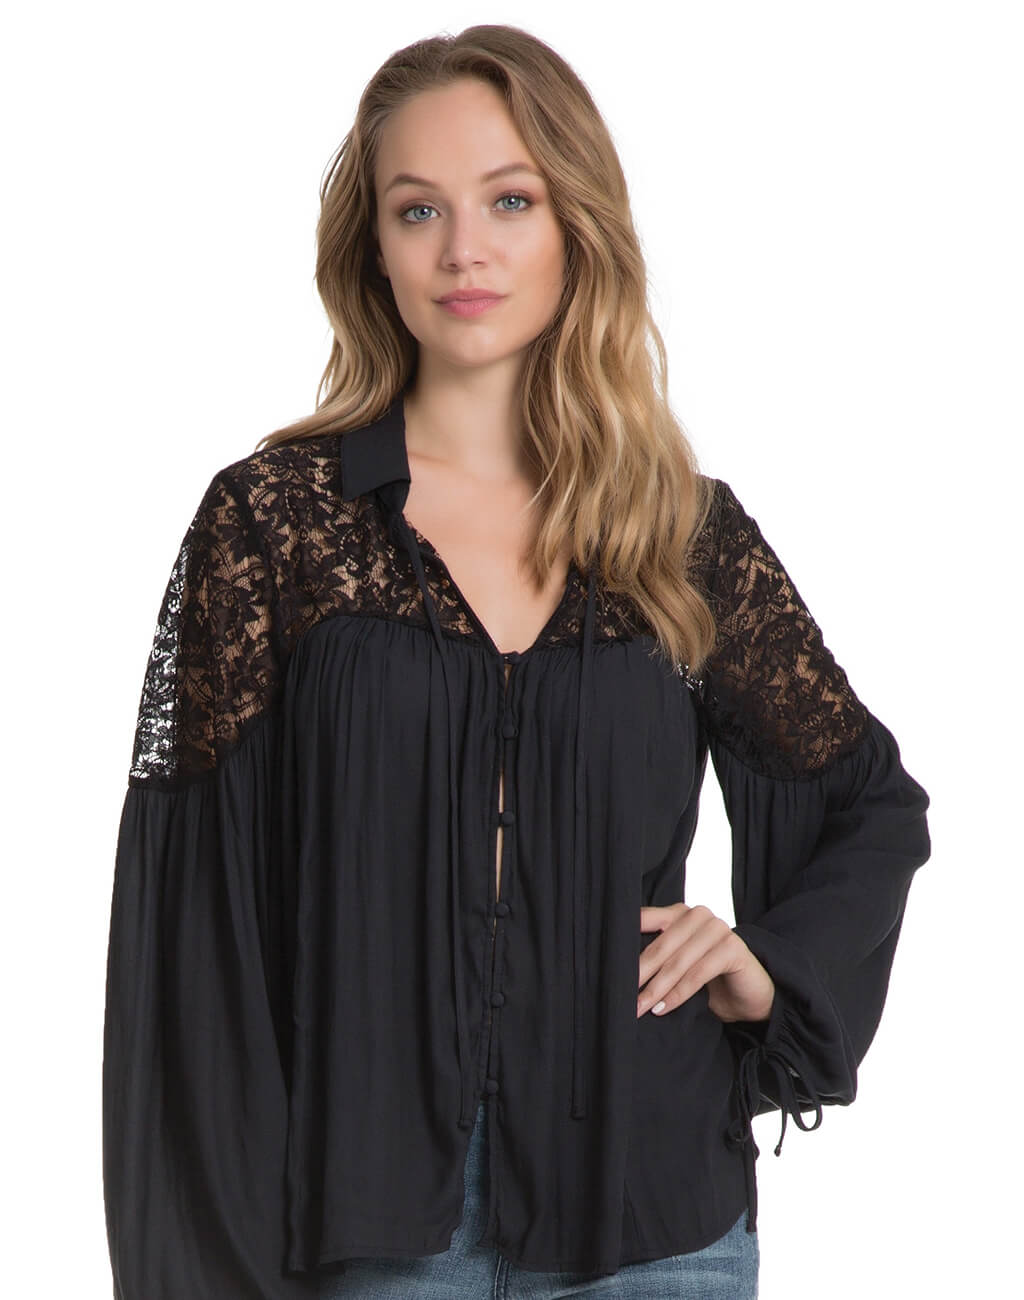 Ladies : Long Sleave Top Black